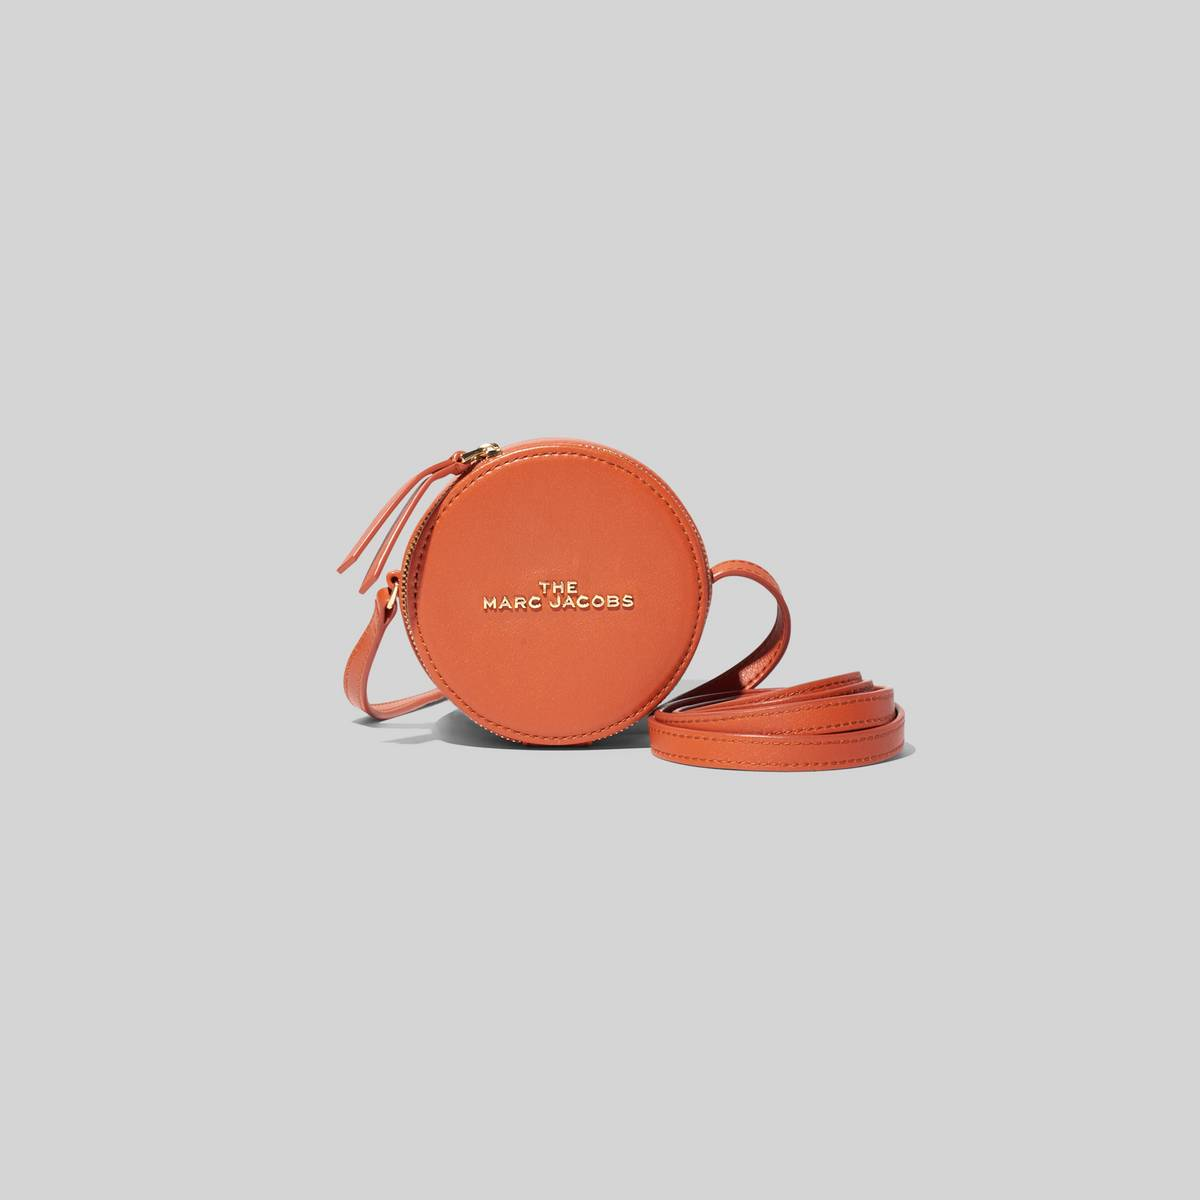 A mini bag that\\'s spot on. Use it to carry cash, AirPods, mintsany and all the small items you love. | MARC JACOBS Women\\'s The Hot Spot in Clove